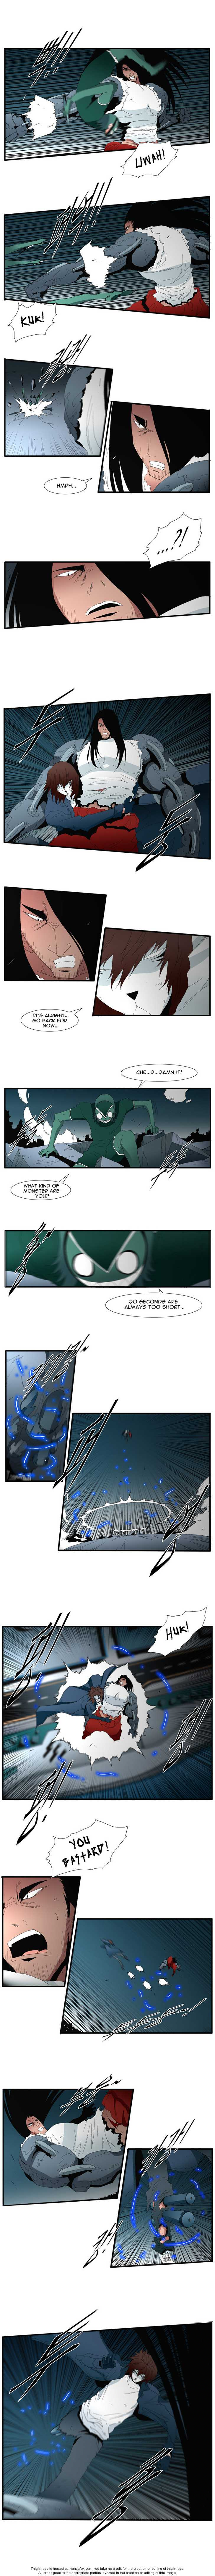 Trace 32 Page 2